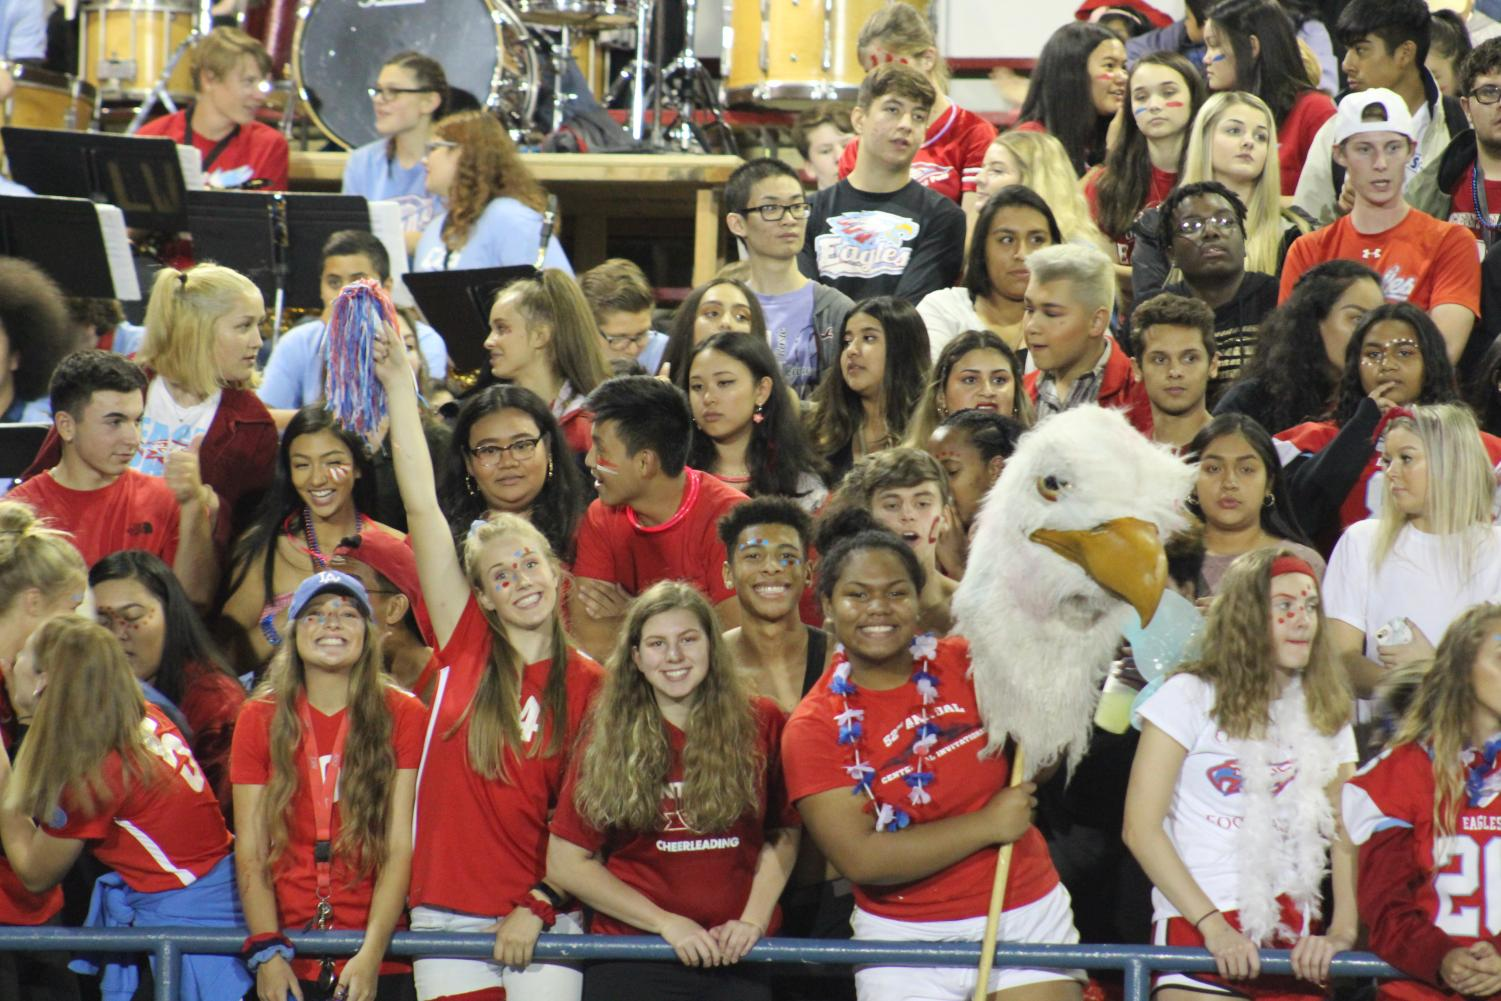 Students cheer in the stands at Homecoming. The football team heads to McMinnville for Friday's game.